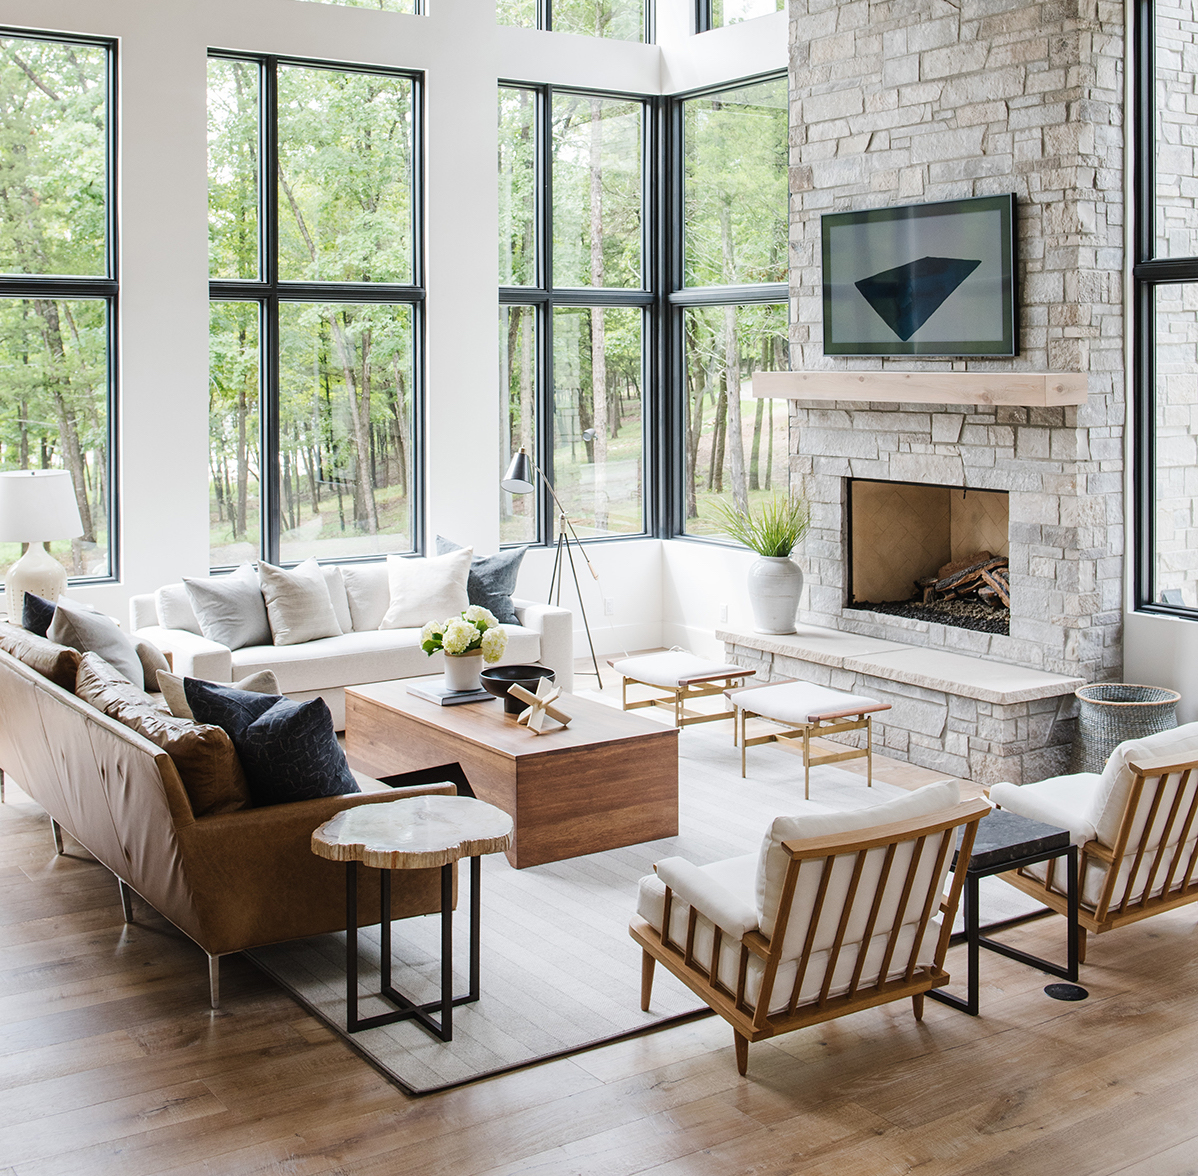 5 Bedroom Ideas For Autumn From The White Company: STUDIO MCGEE